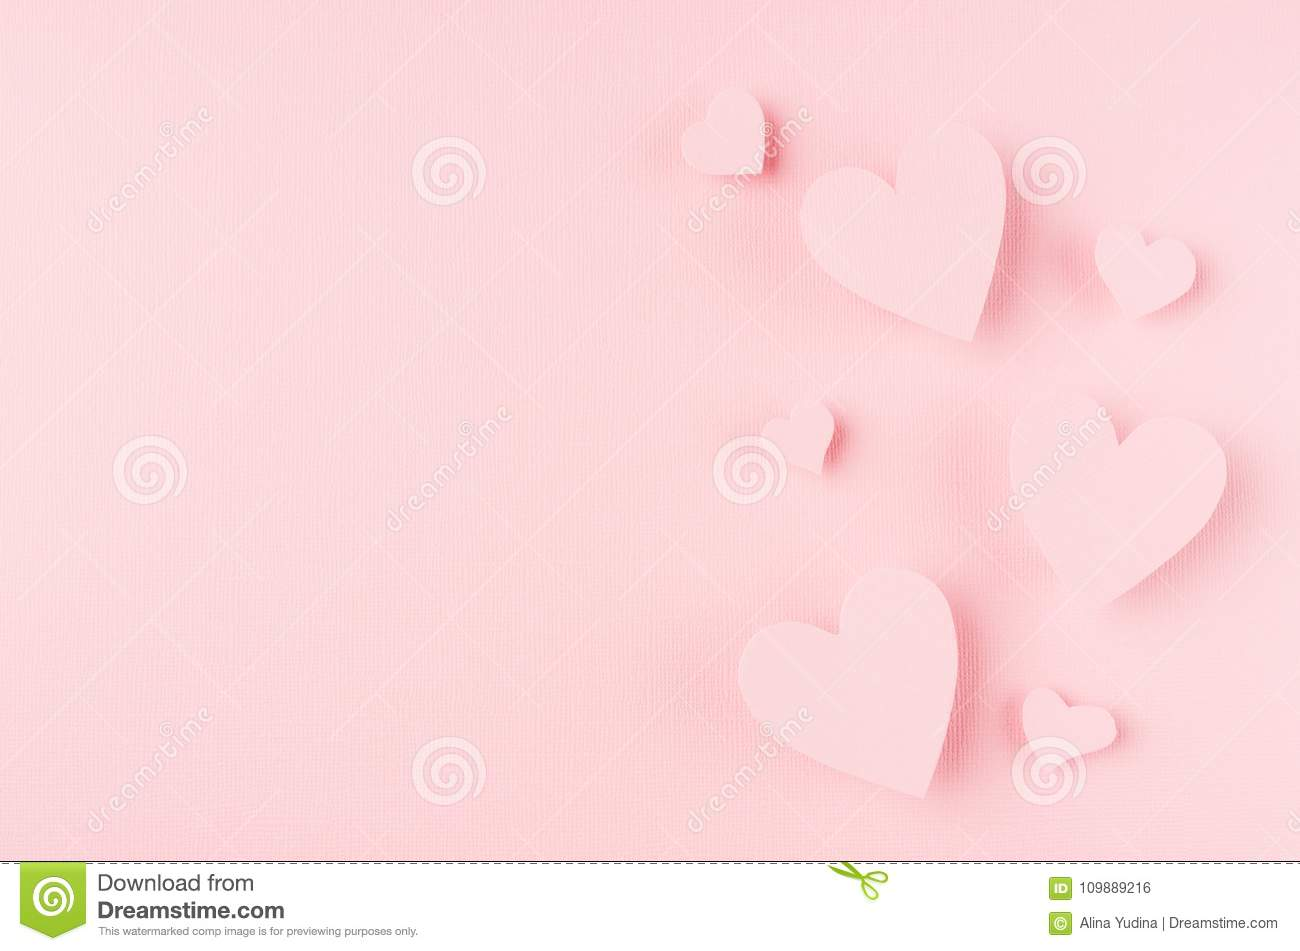 Valentines day background with hearts flying on pink paper, copy space.